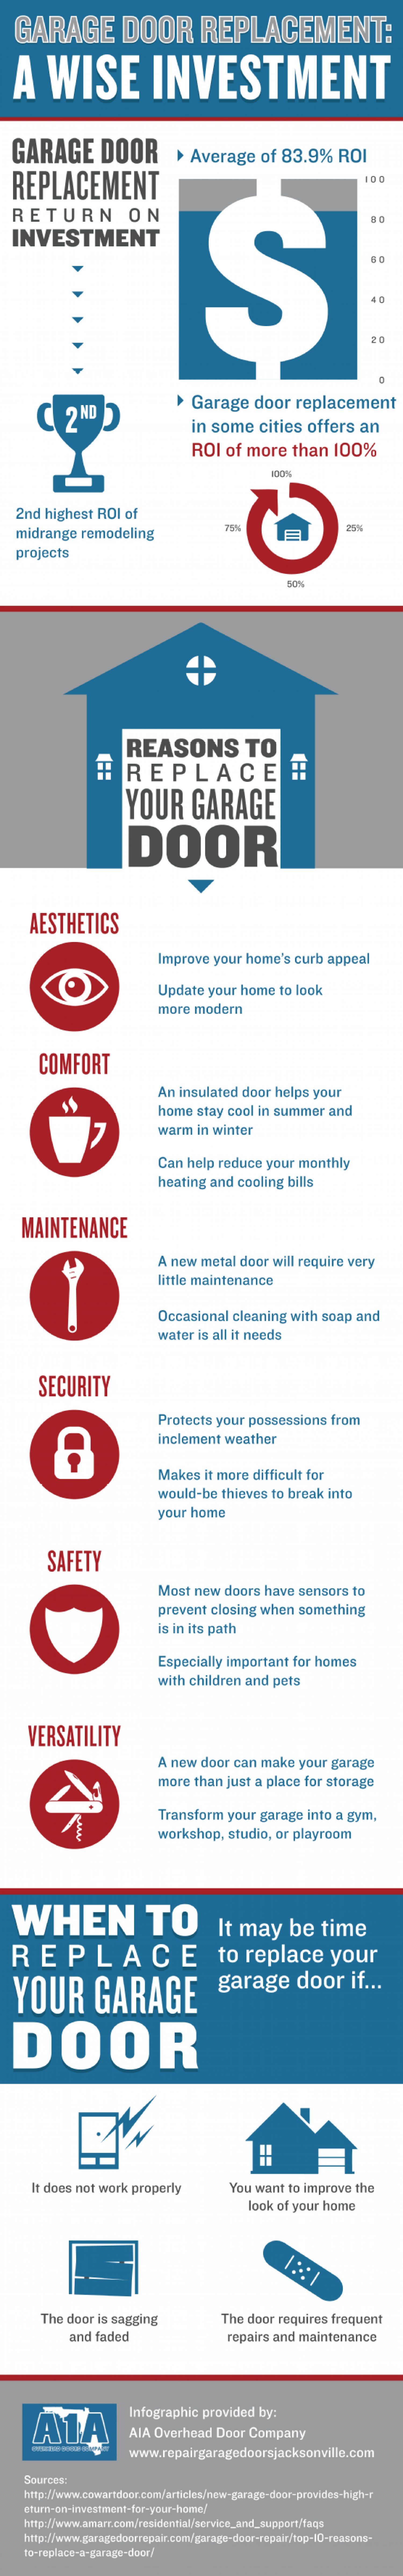 Garage Door Replacement: A Wise Investment Infographic